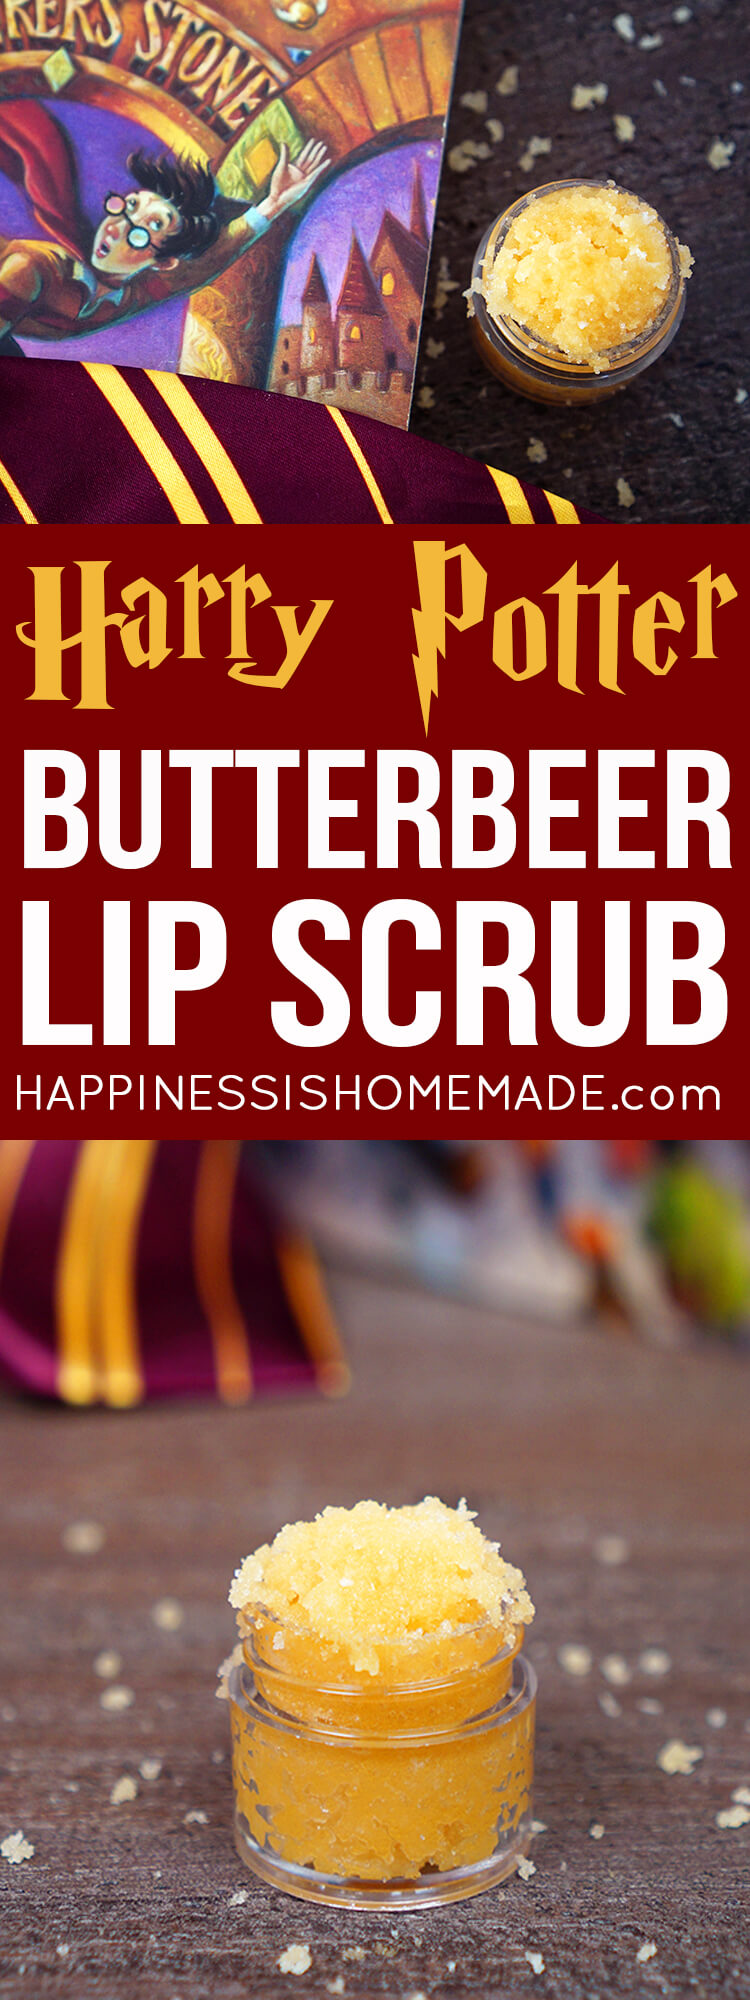 This delicious Butterbeer Sugar Scrub recipe is incredible (and SO easy to make!)! Make a small batch of Butterbeer Lip Scrub or a bigger batch to smooth your entire body and leave your skin soft and silky! A great homemade gift idea for Harry Potter fans!